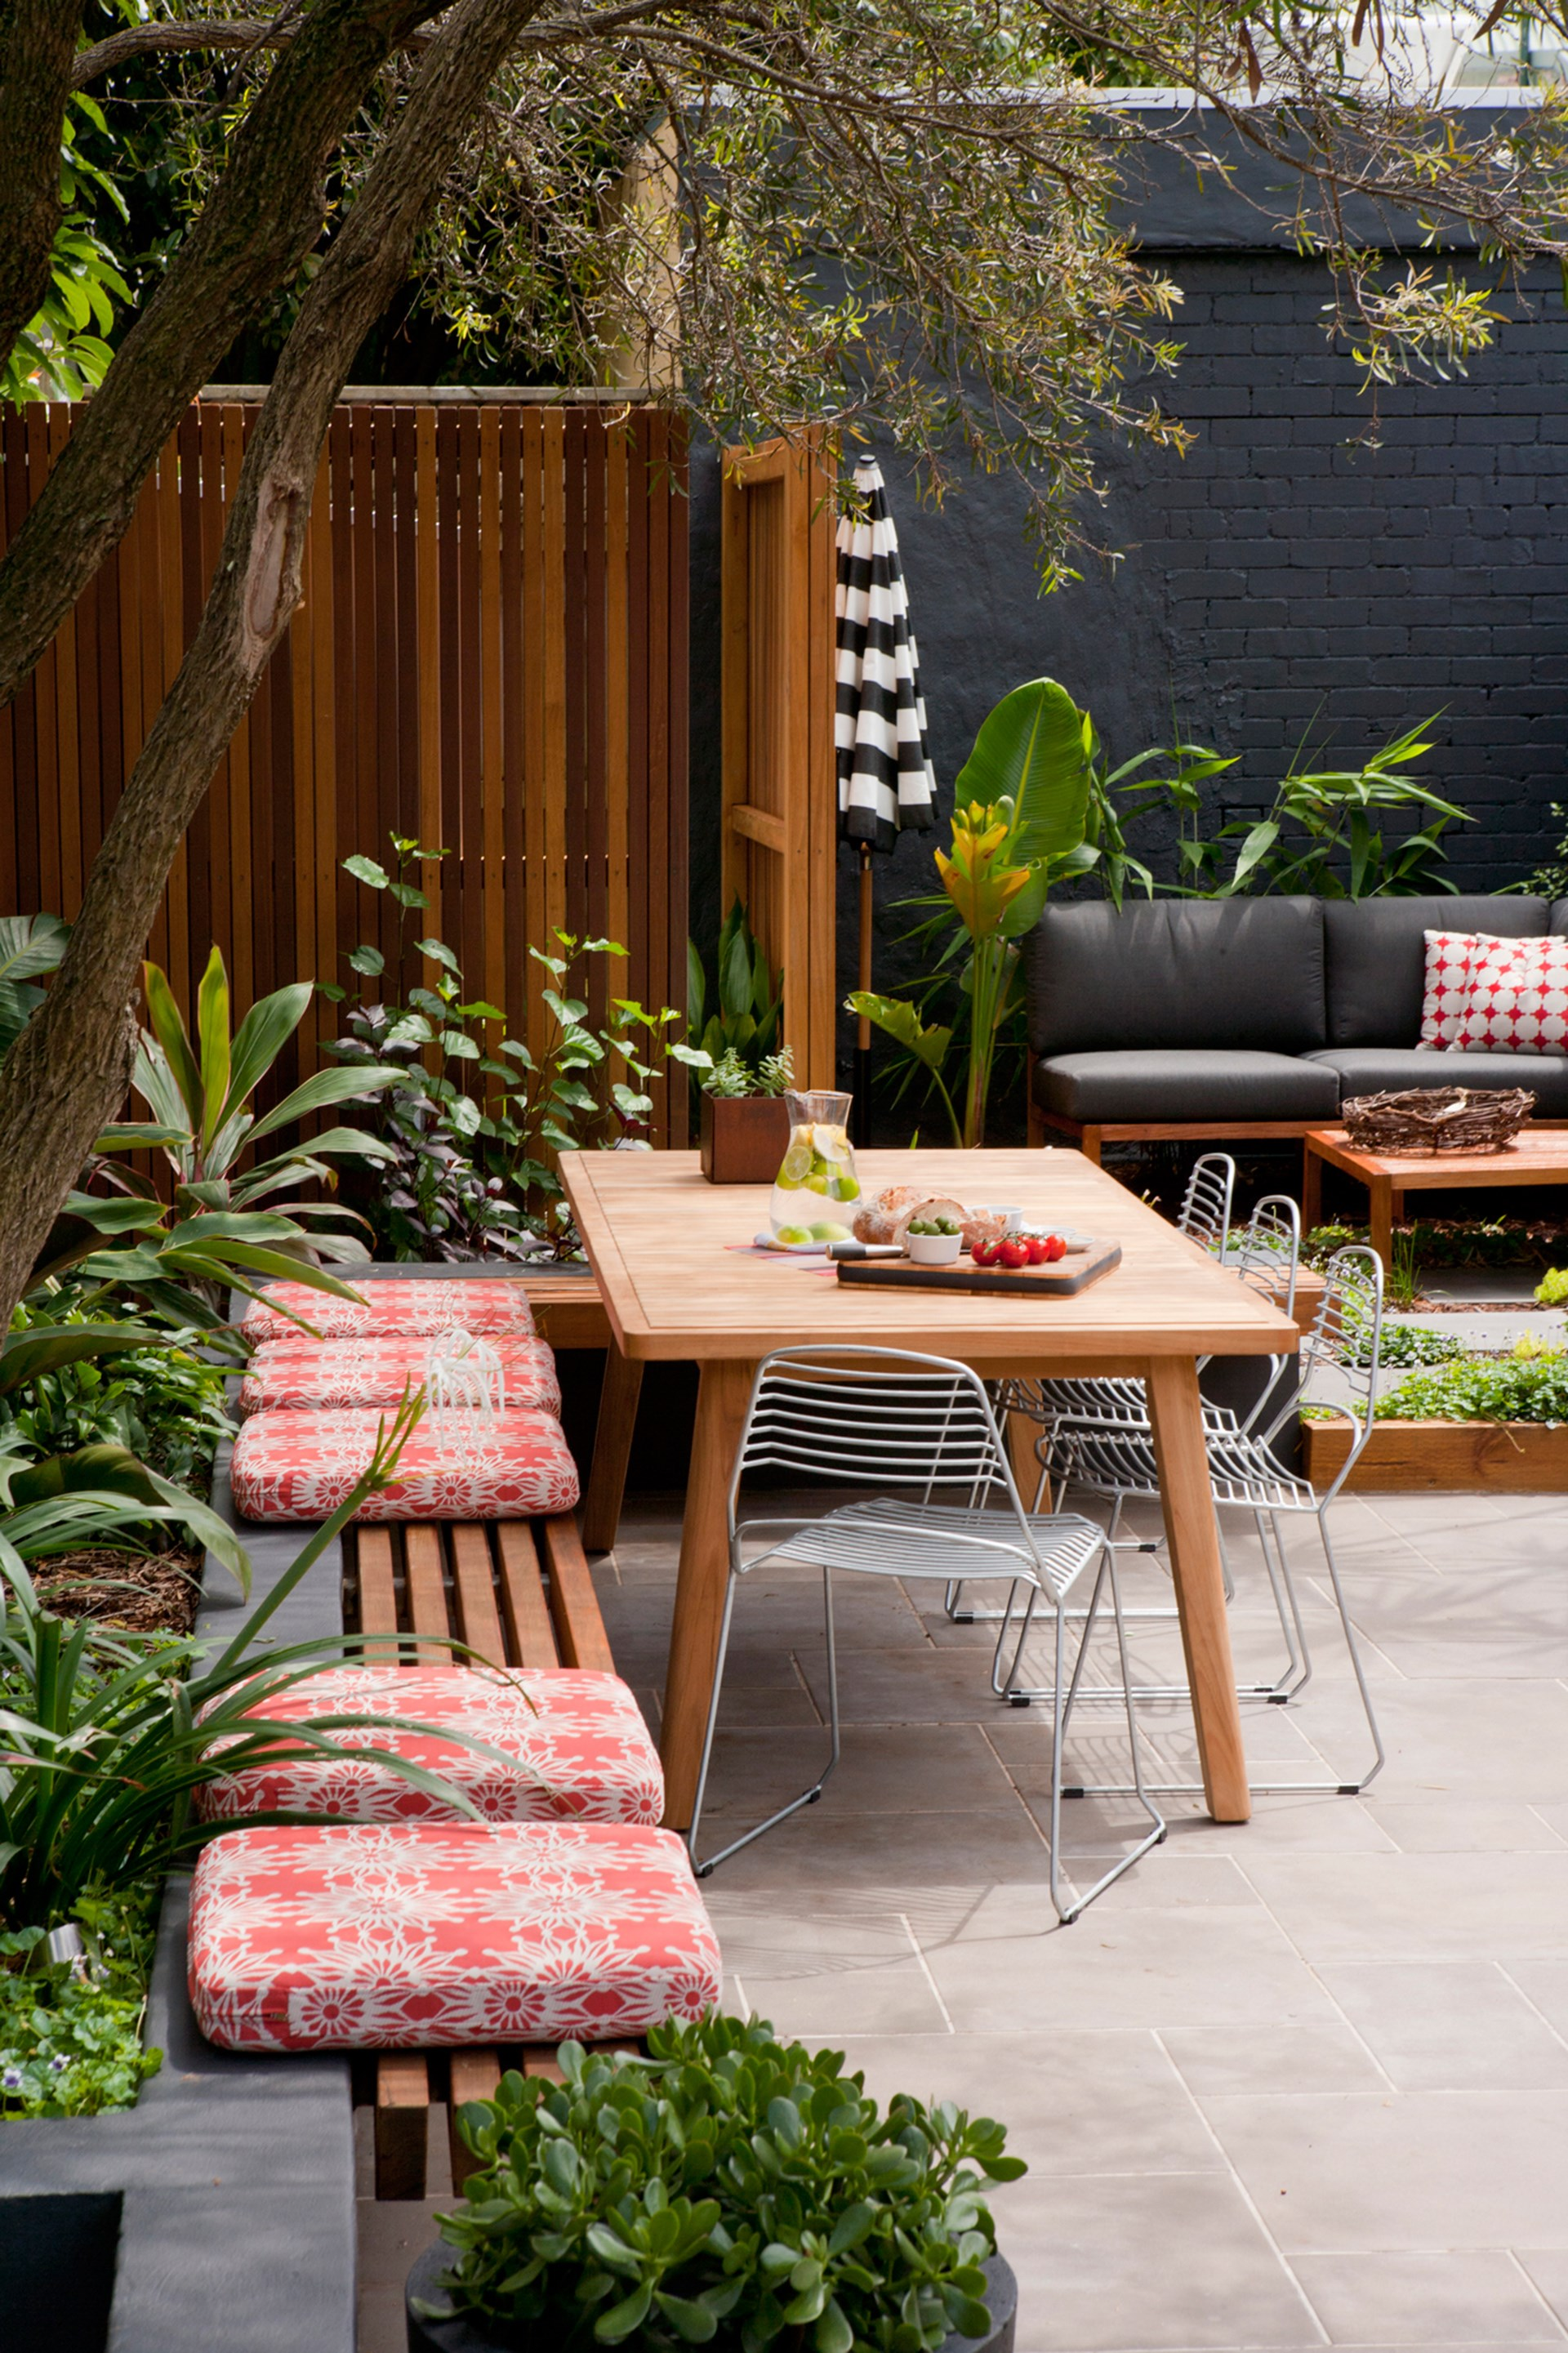 """**Built-in furniture is the future** – use quality materials and construct a built-in feature that will last forever and make your garden infinitely more useable. [Take a tour of this inner-city backyard transformation](http://www.homestolove.com.au/inner-city-backyard-transformation-3581